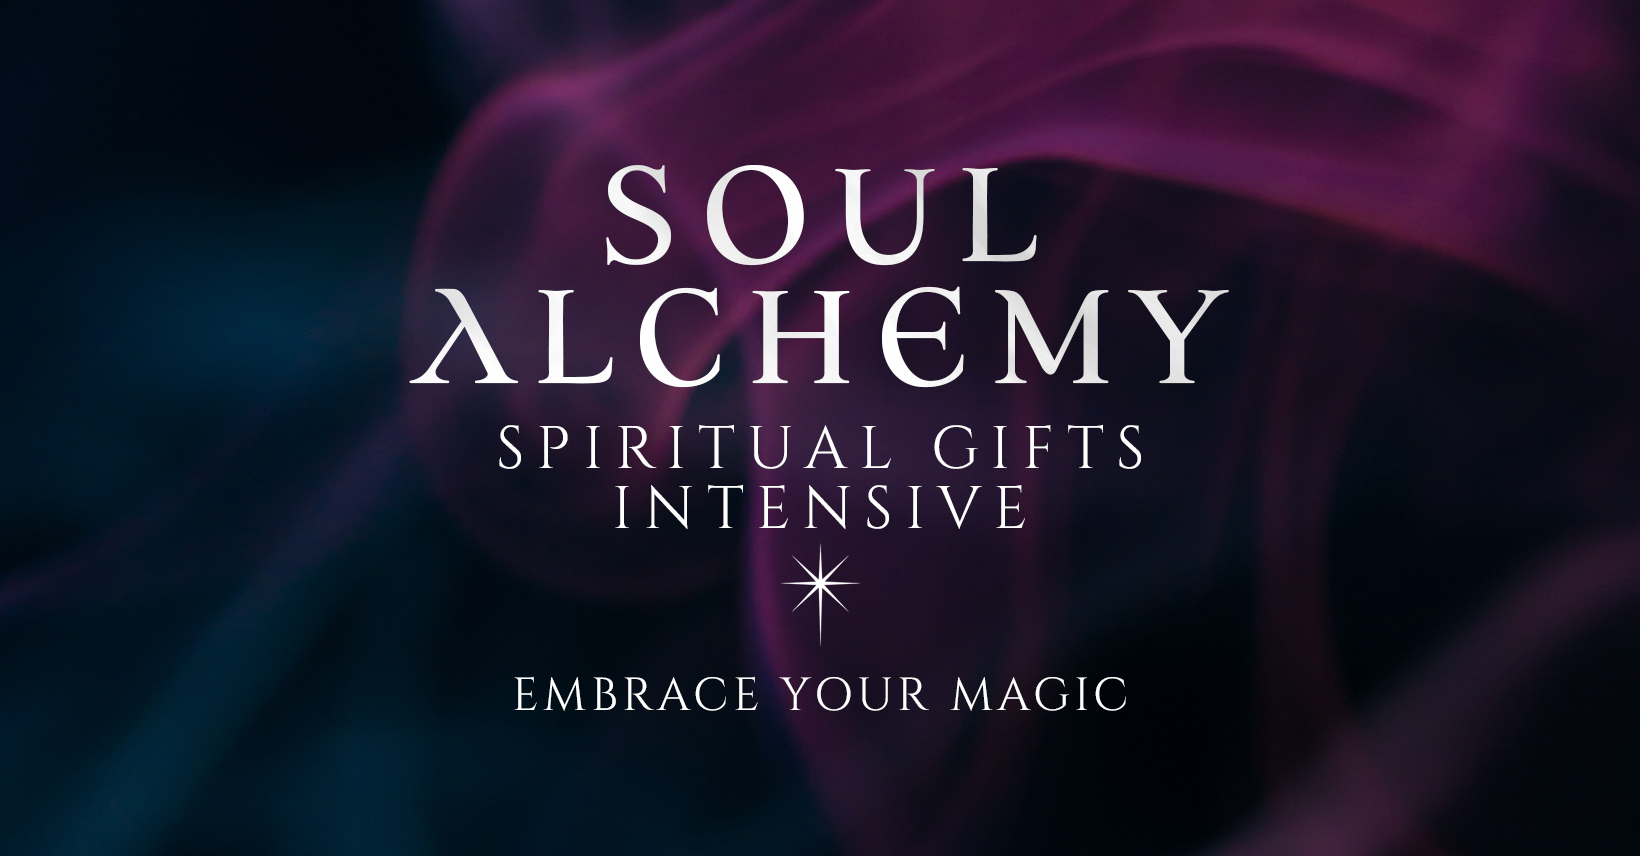 Soul Alchemy Spiritual Gifts Intensive